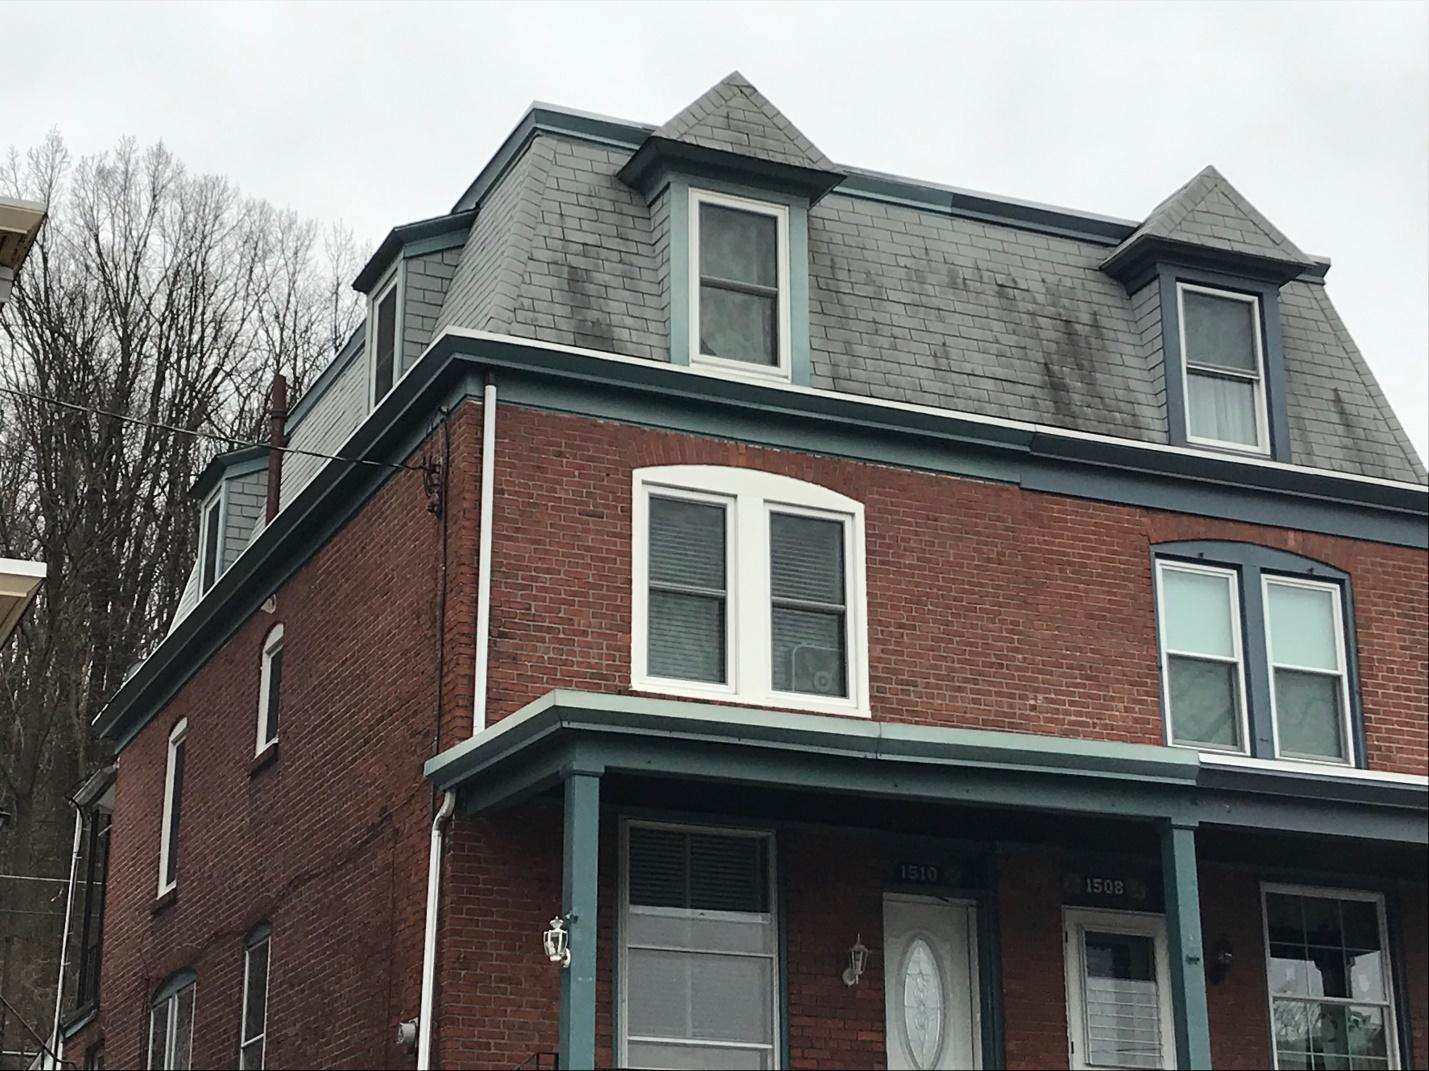 Owens Corning Shingles in Chatham, PA - Before Photo